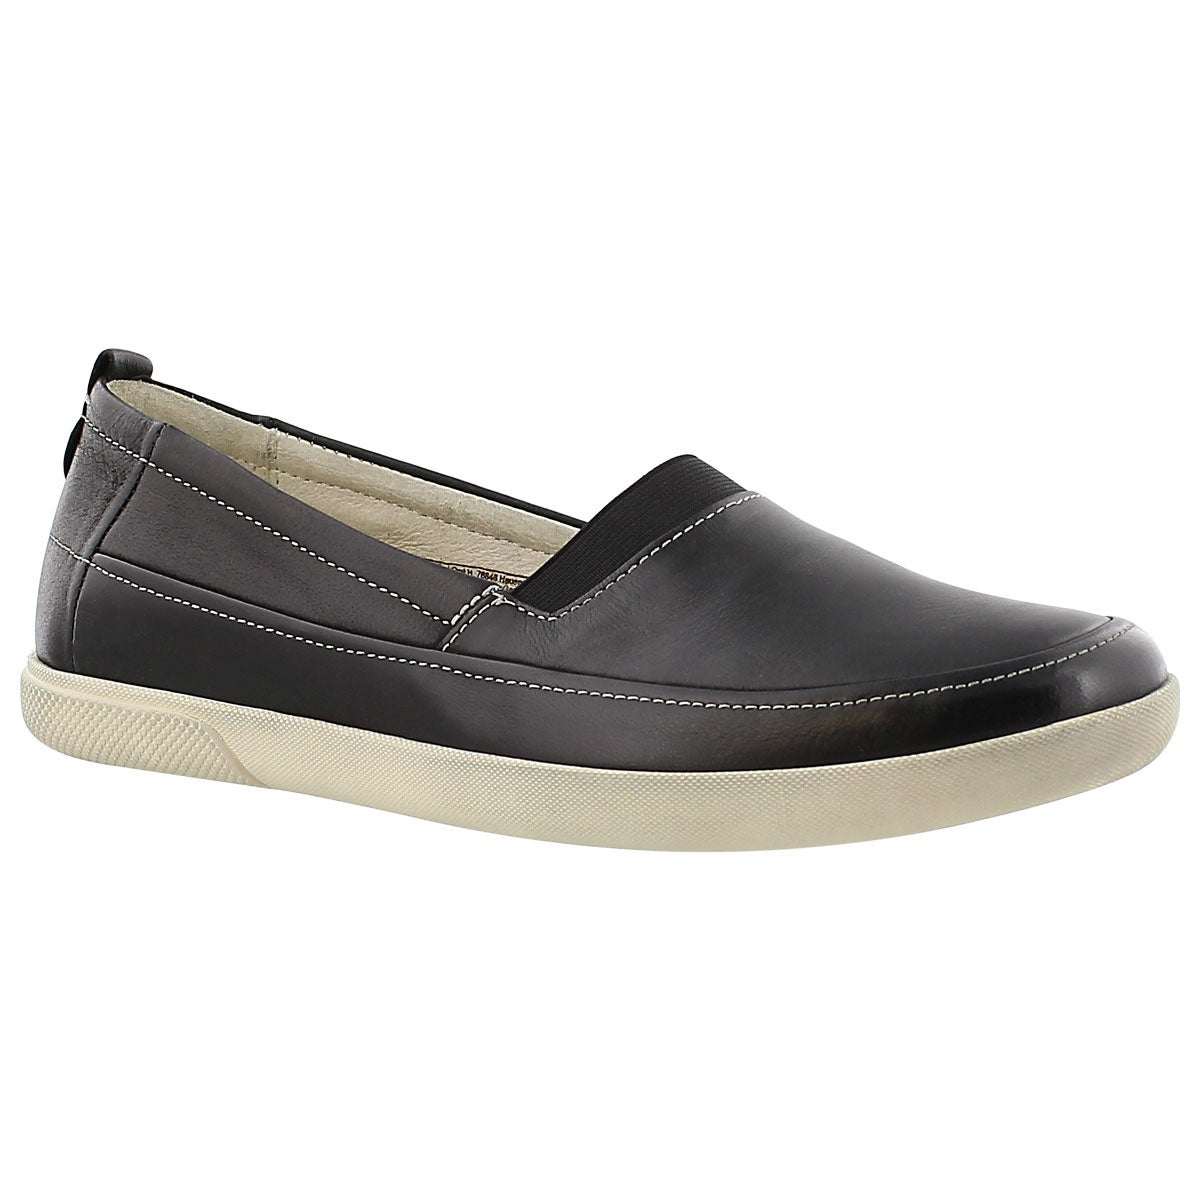 Lds Ciara 11 black slip on casual shoe